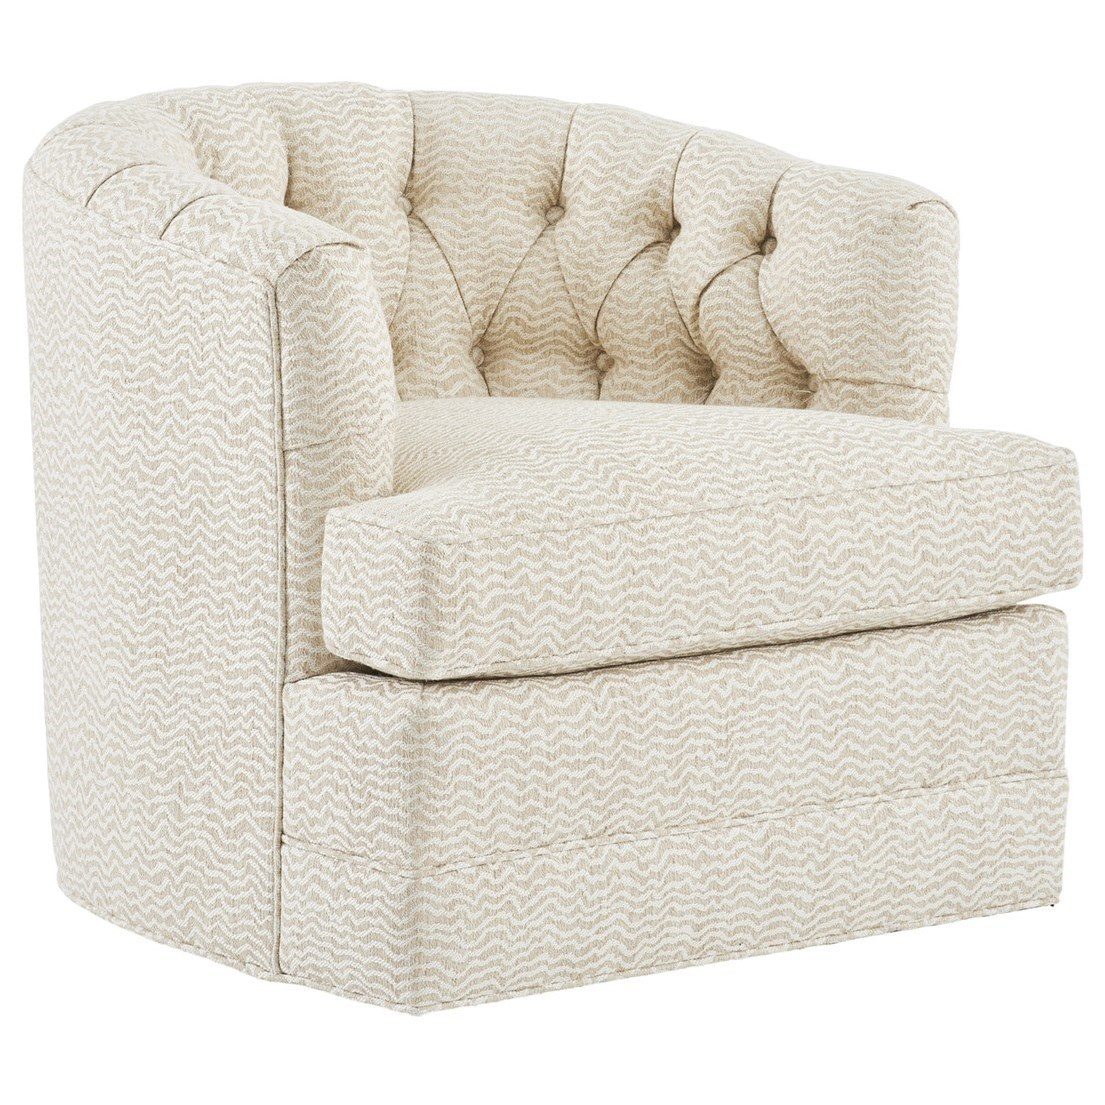 Barclay Butera Upholstery Cliffhaven Swivel Chair by Barclay Butera at Baer's Furniture